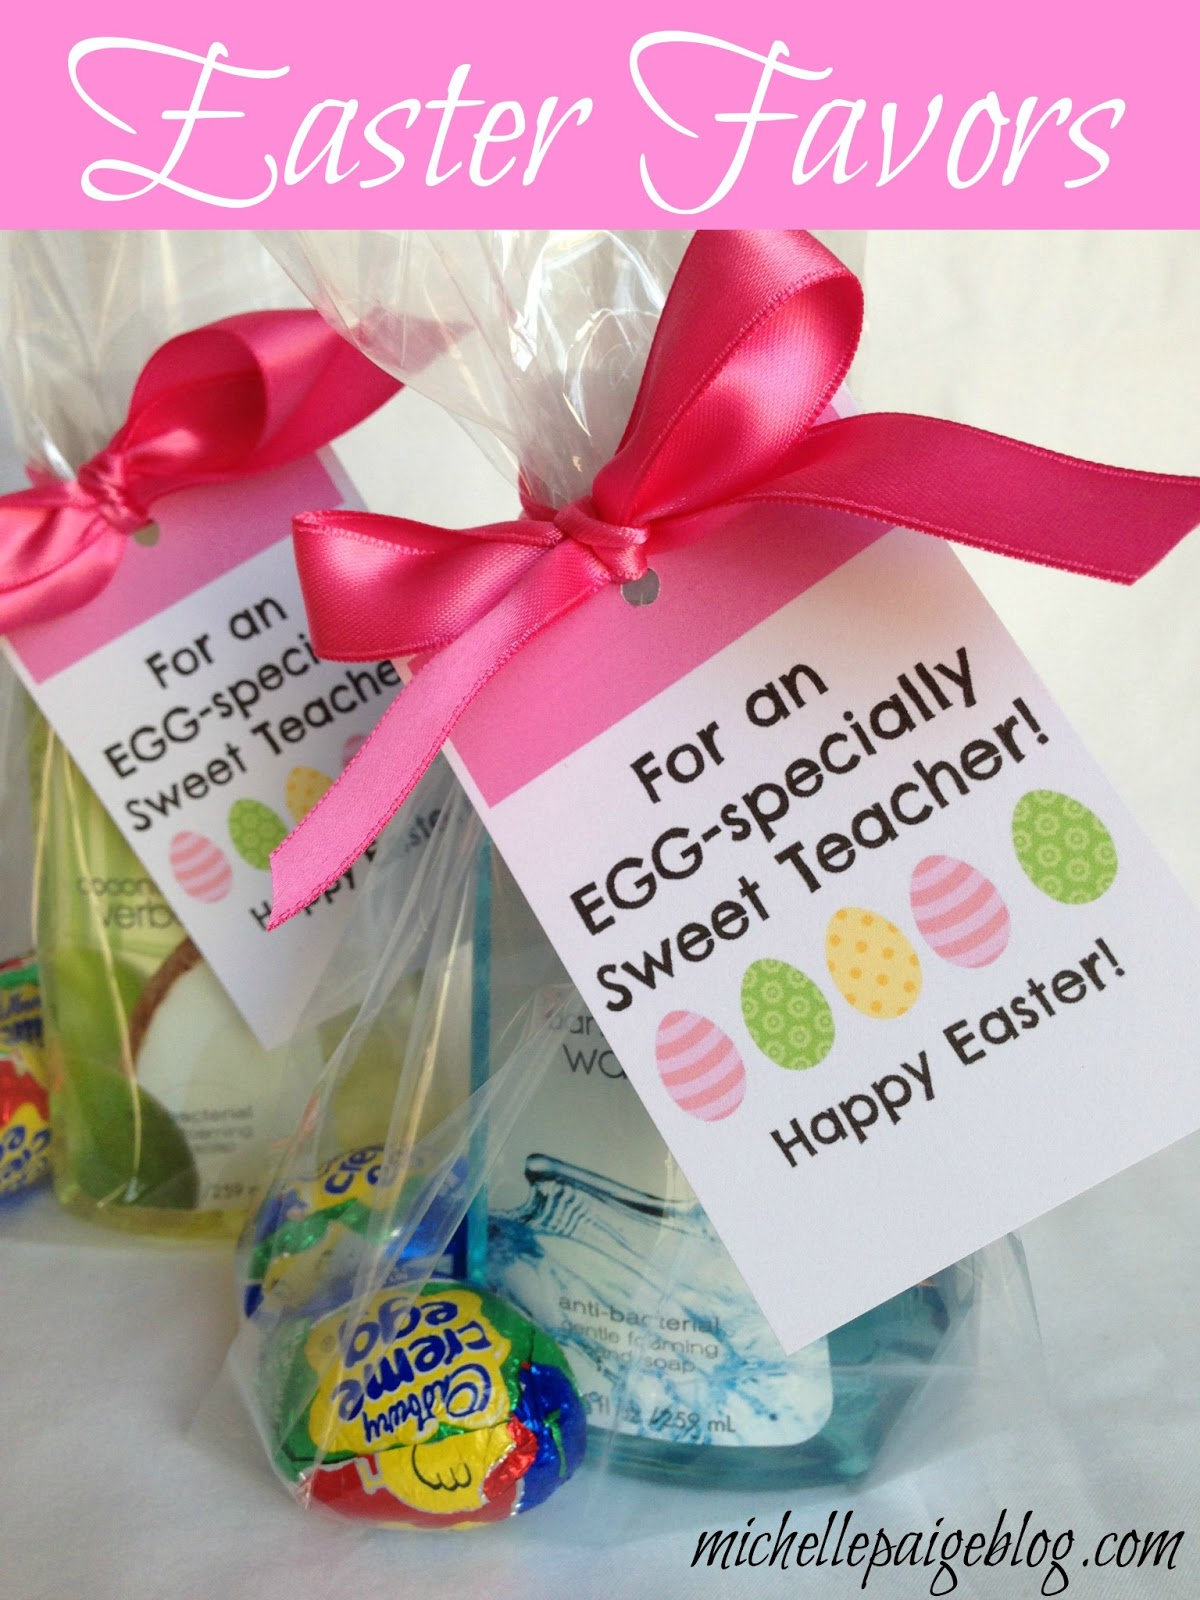 Michelle paige blogs easter favors for teachers friends and family easter favors for teachers friends and family negle Image collections